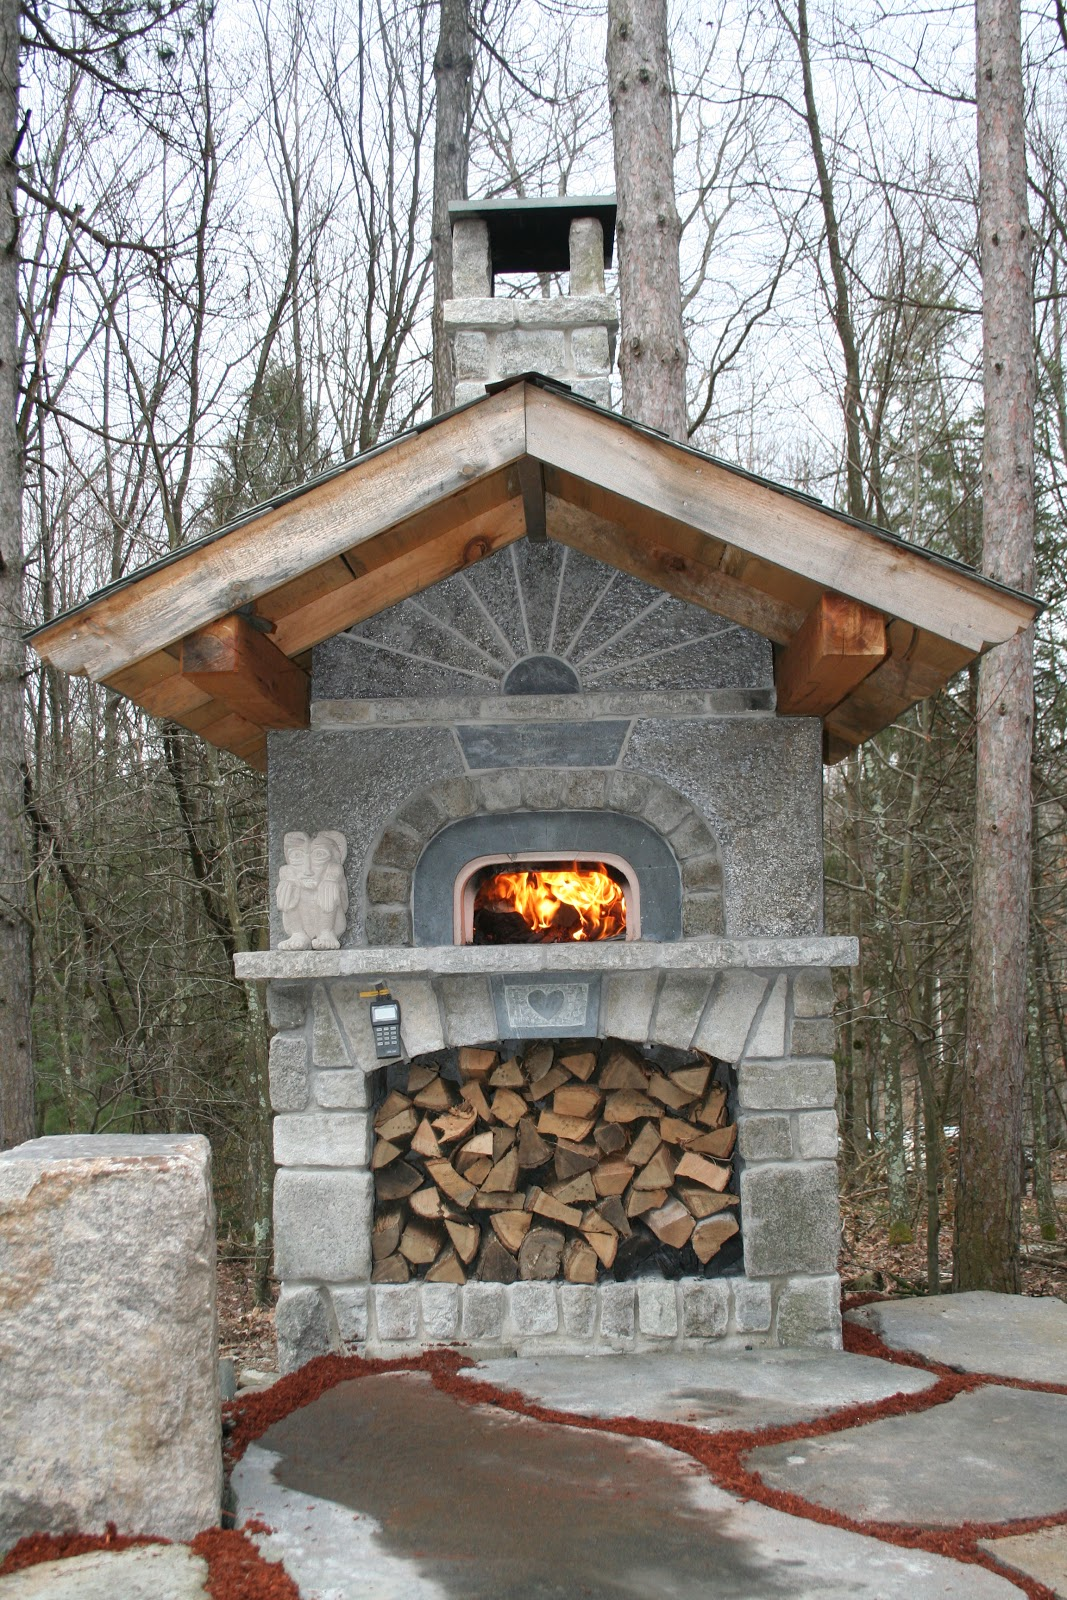 Mortar For Wood Fired Oven : Masonry heaters heater association encourages